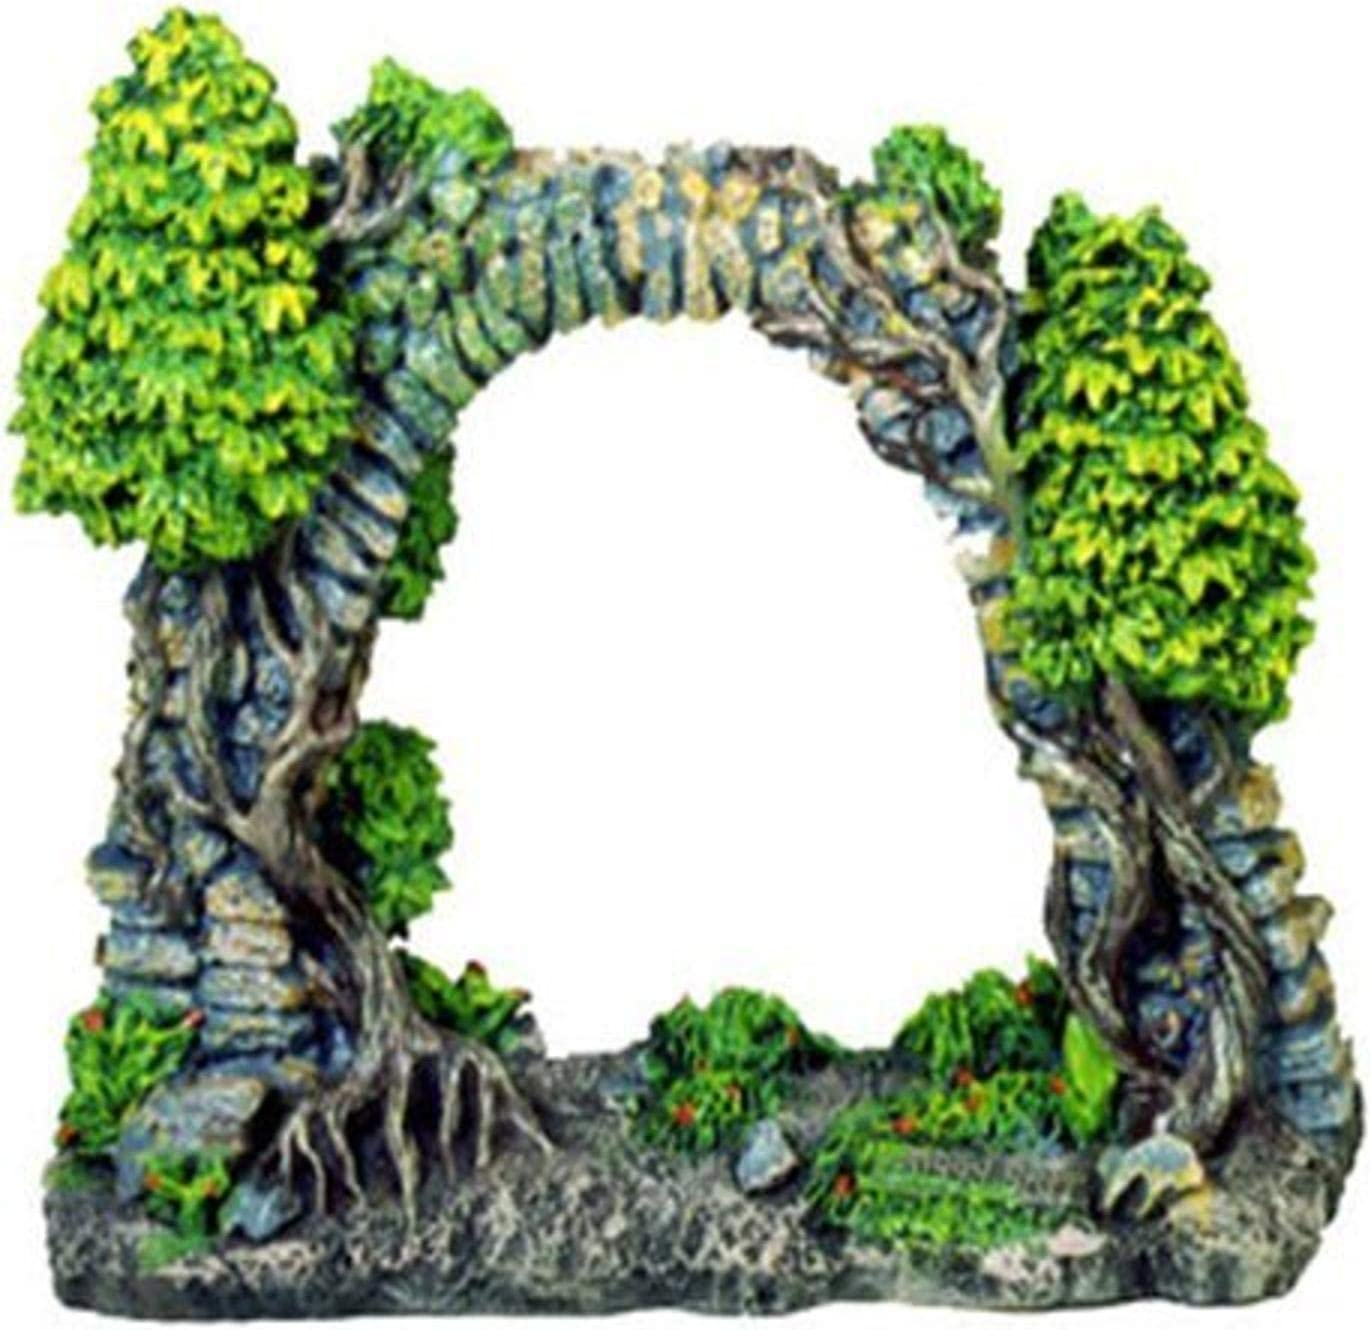 Exotic Environments Cobblestone Archway Aquarium Ornament, 7-Inch by 2-1/2-Inch by 6-1/2-Inch